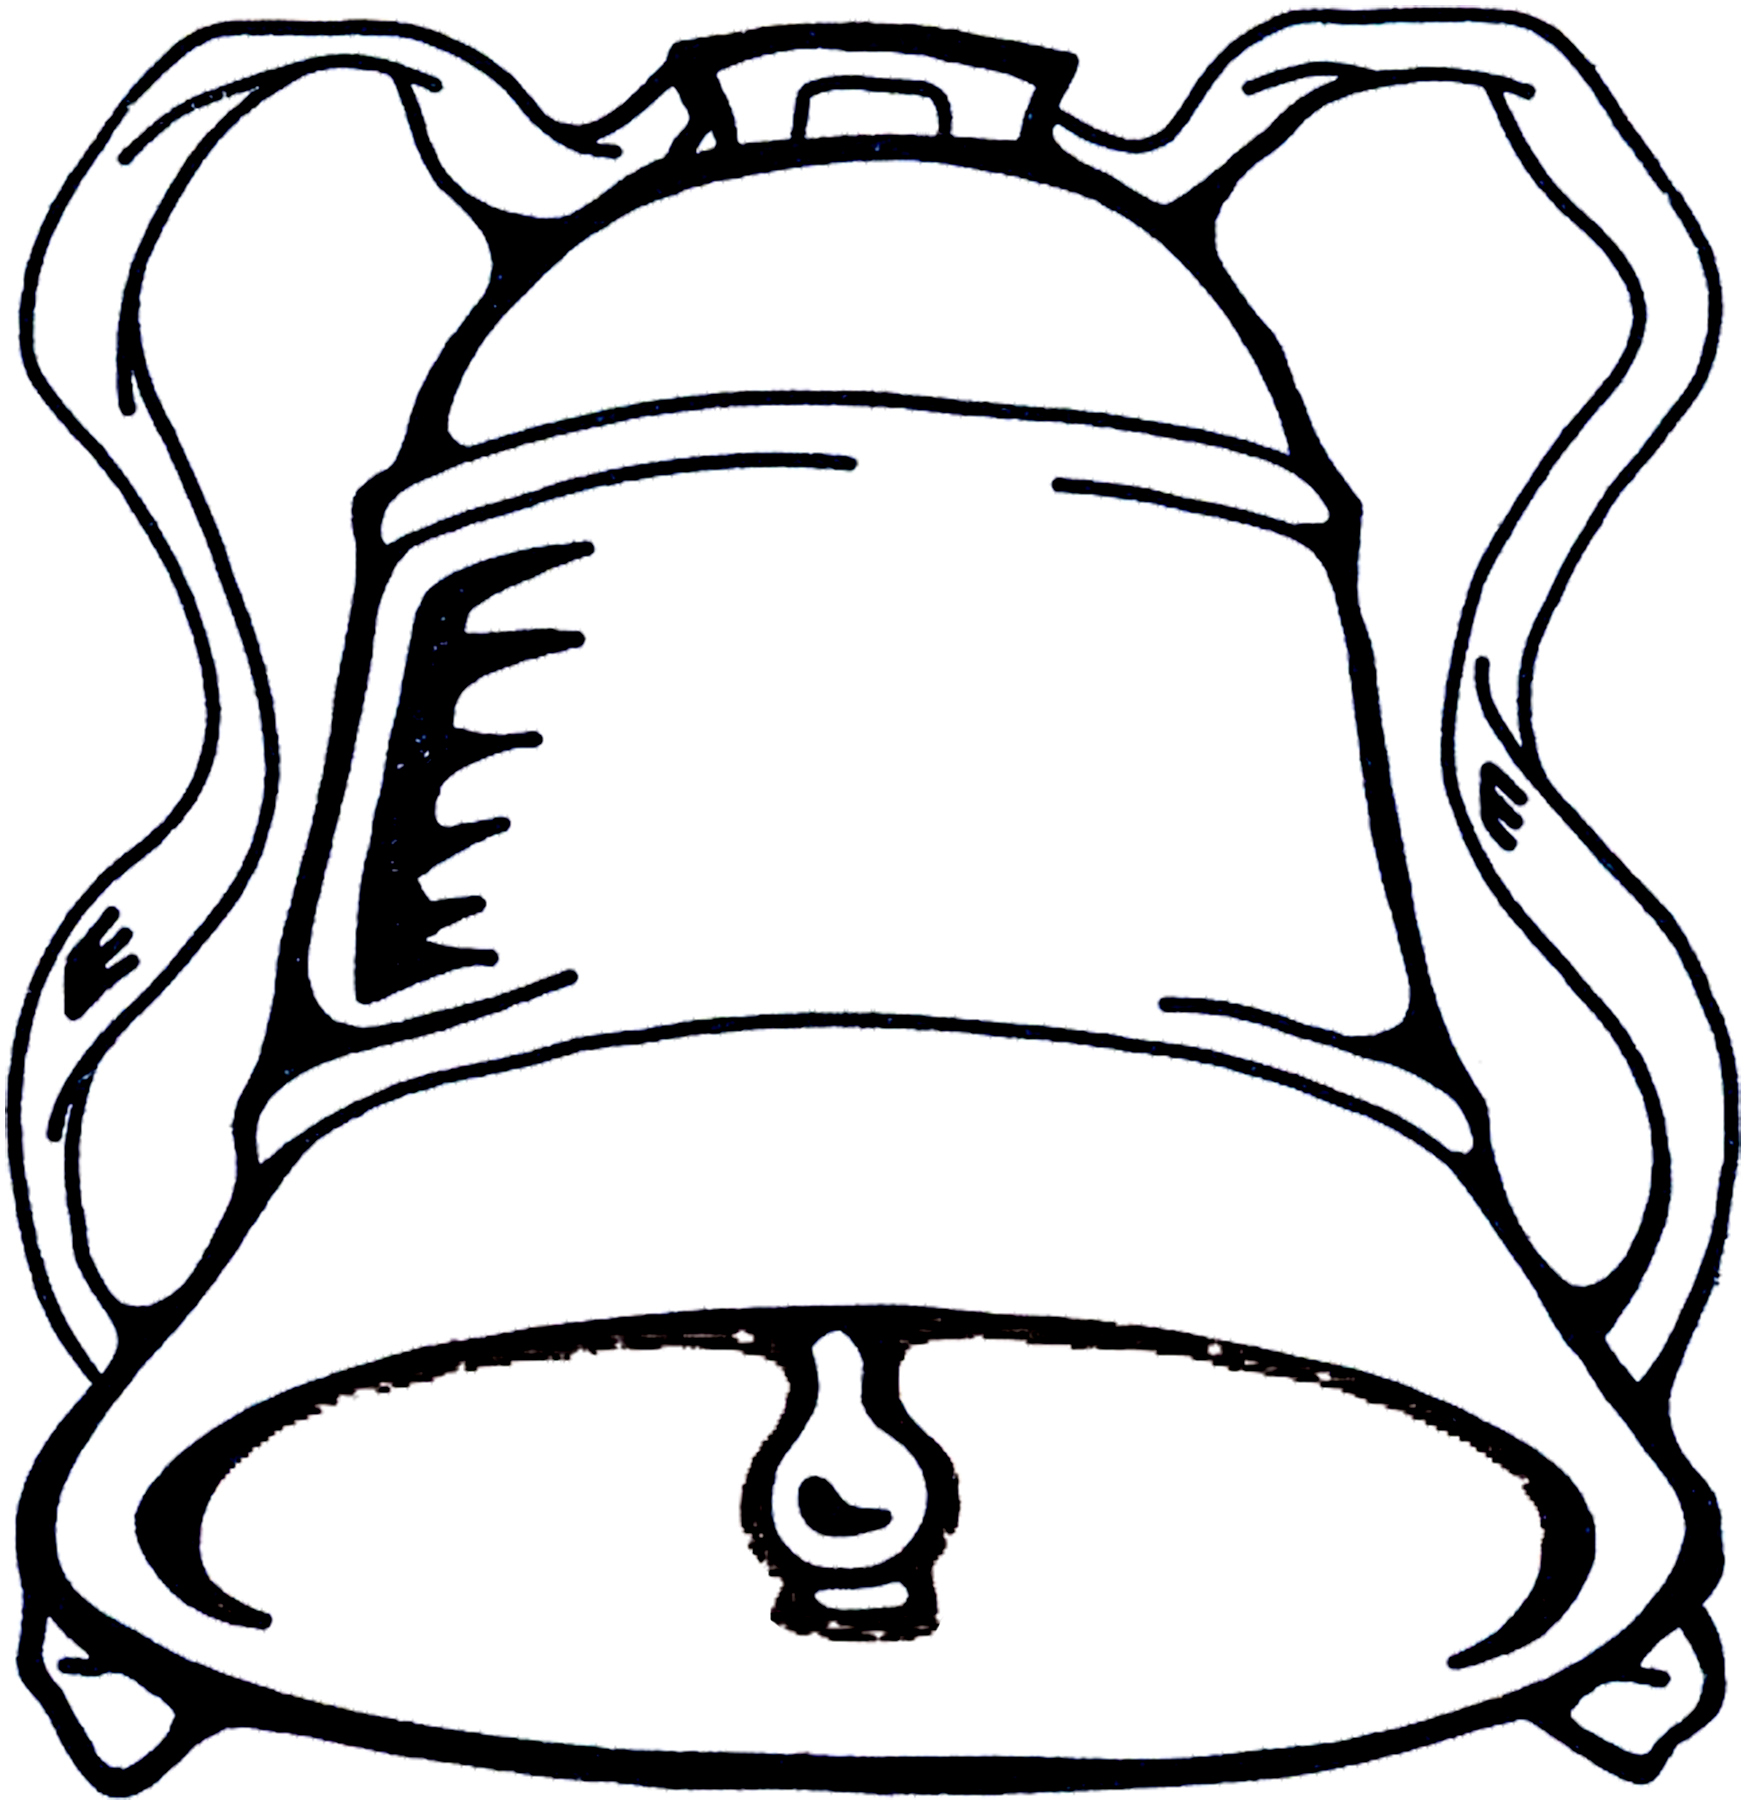 Tribal hand bell clipart black and white picture library library 14 cliparts for free. Download Bell clipart outline and use ... picture library library